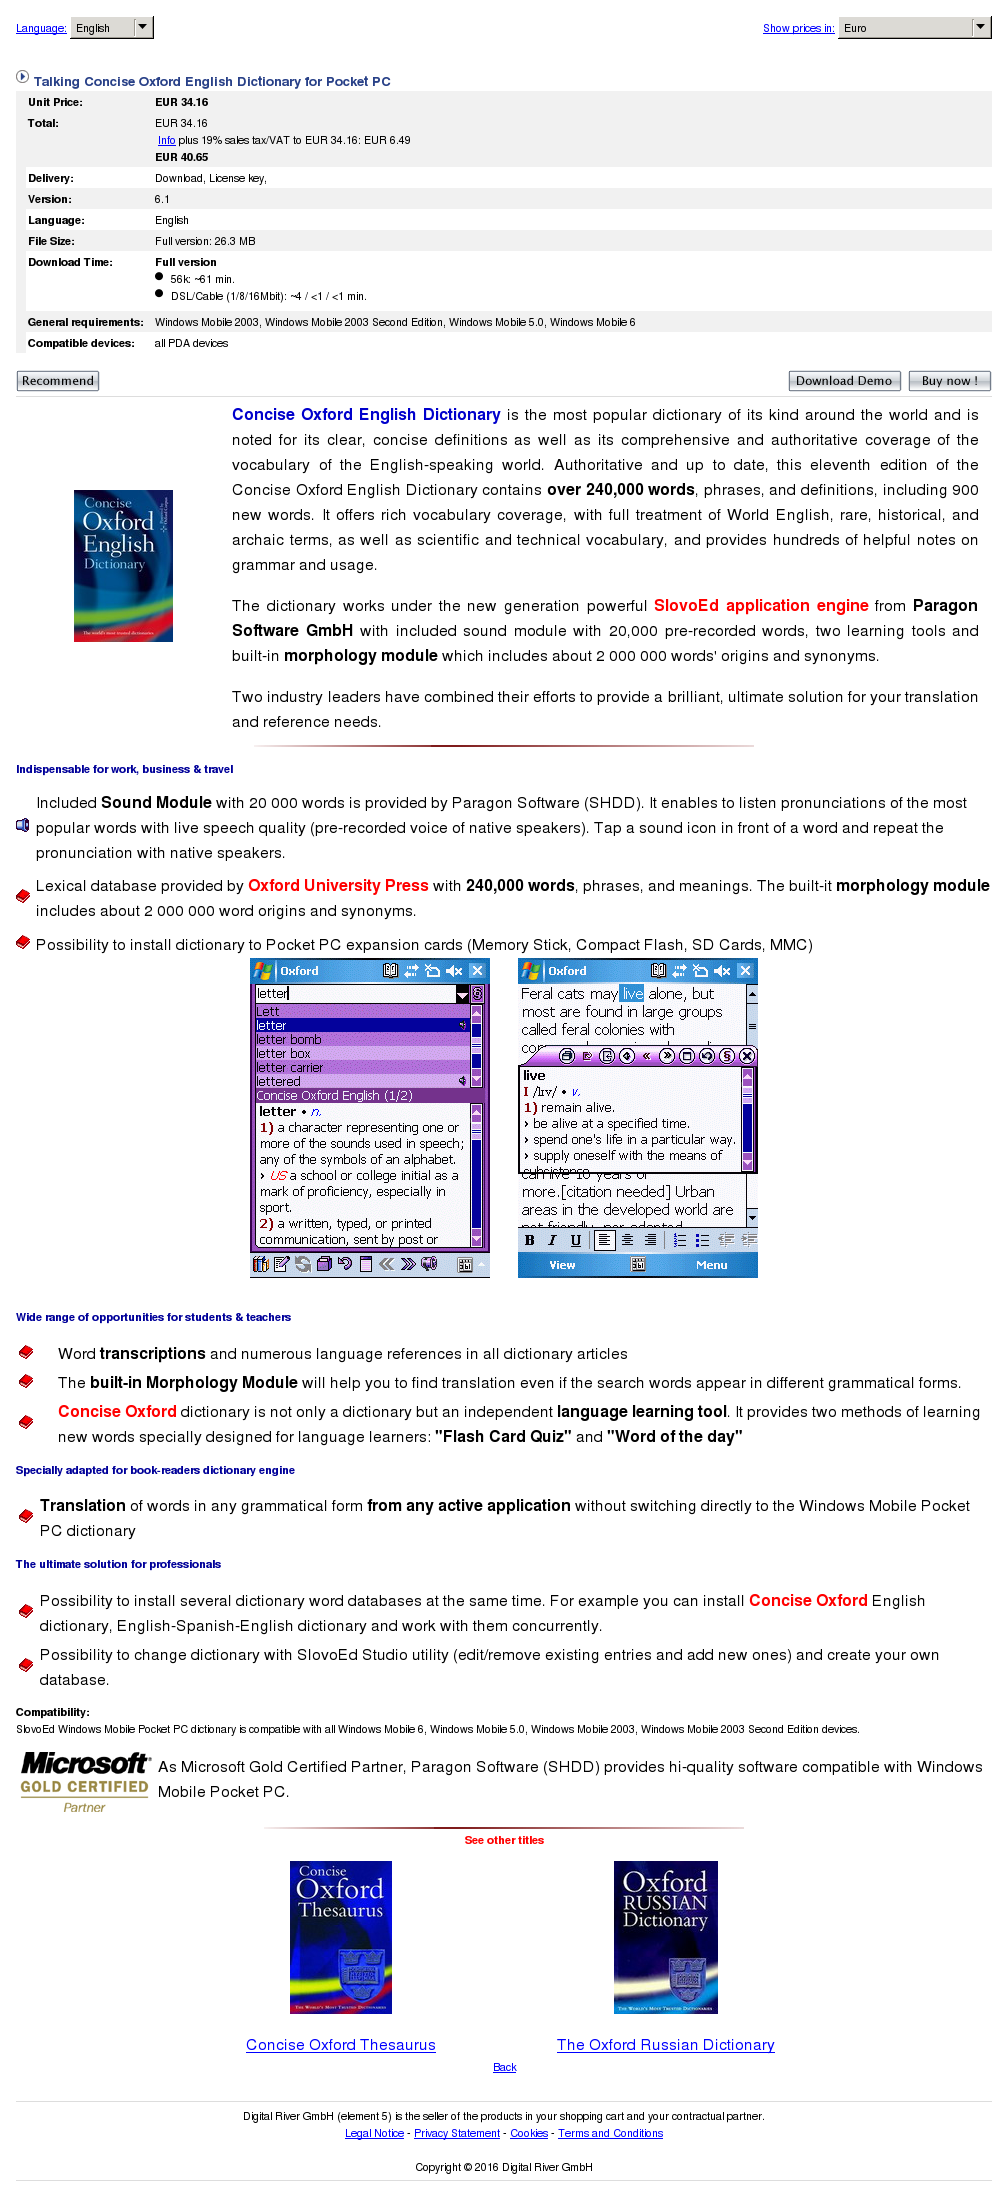 Talking Concise Oxford English Dictionary Pocket Free - Components